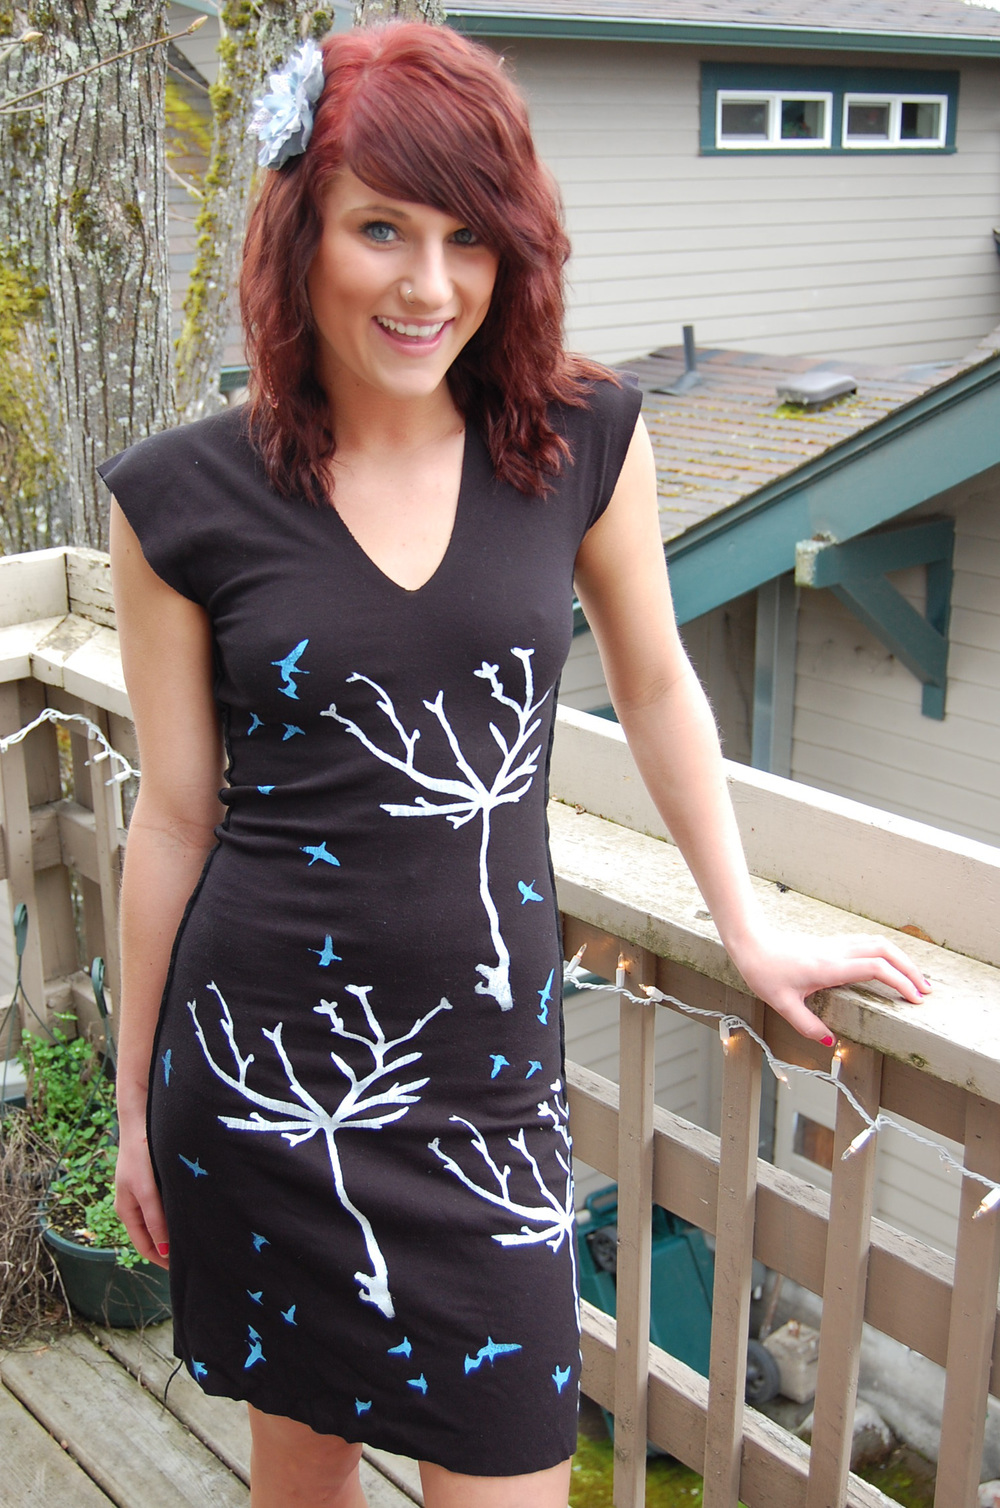 treesdress.jpg